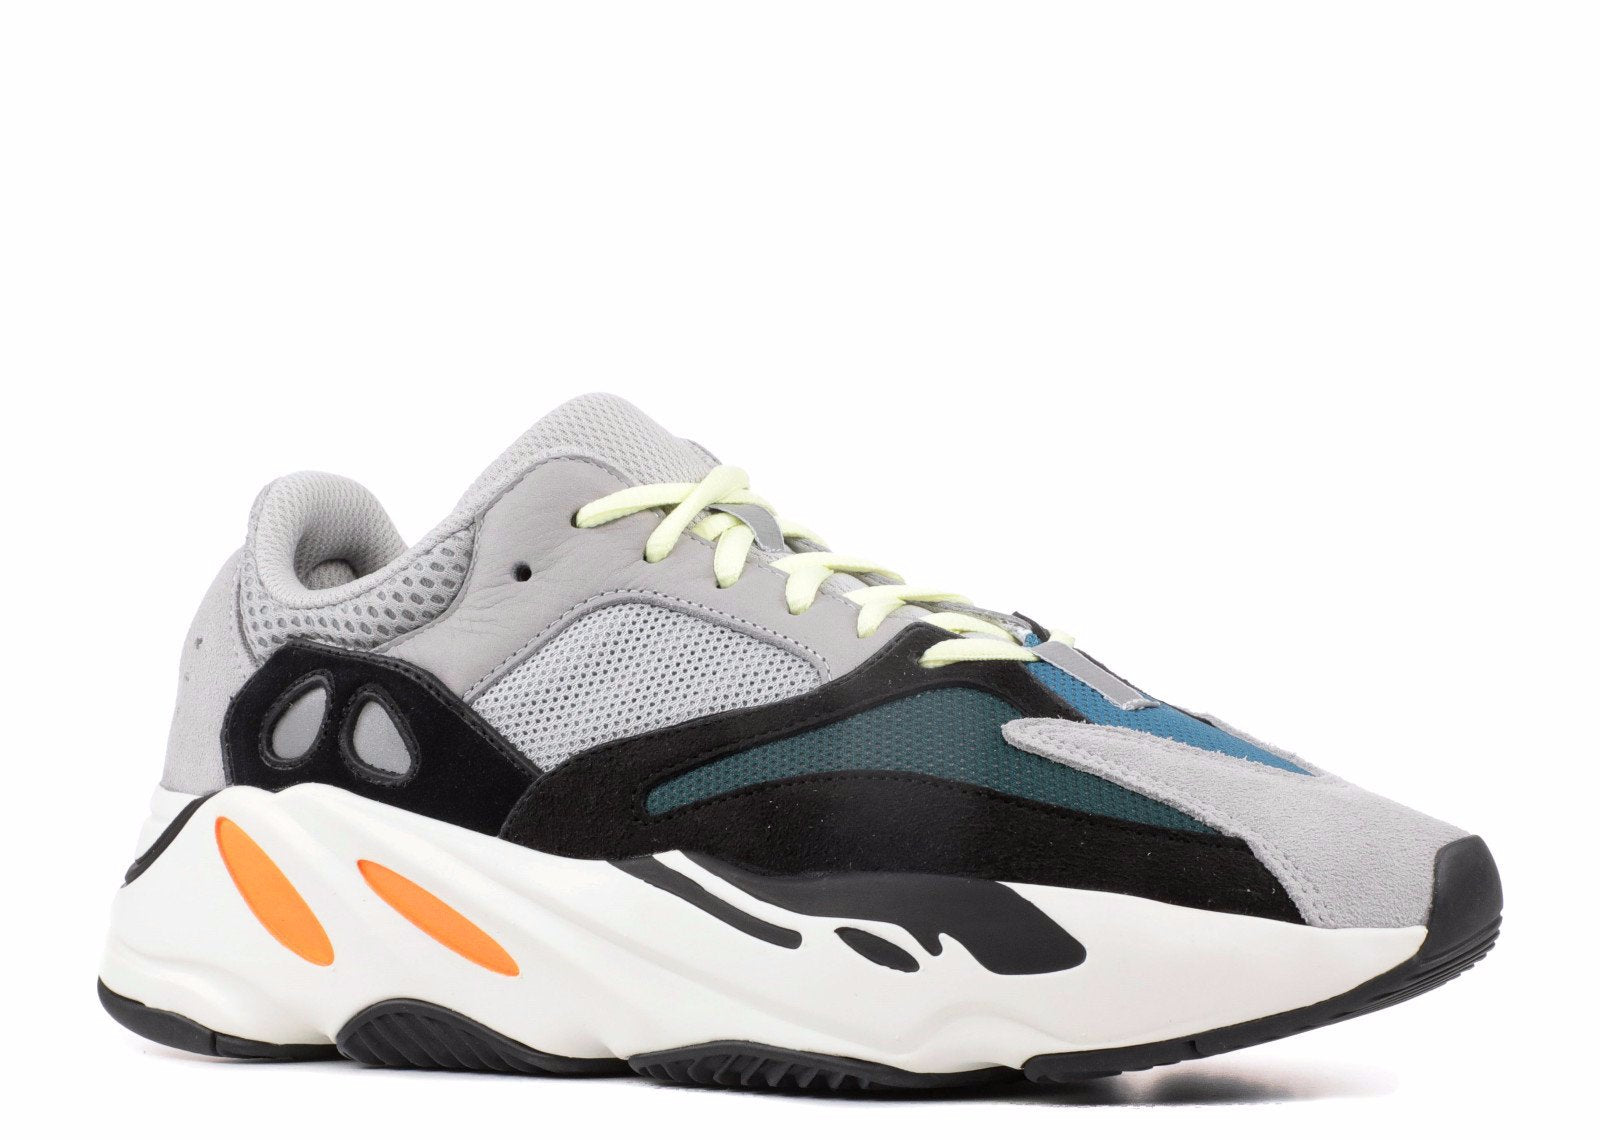 1316b3bad Adidas  Yeezy Boost 700 Wave Runner  Sneaker (White Black Grey ...